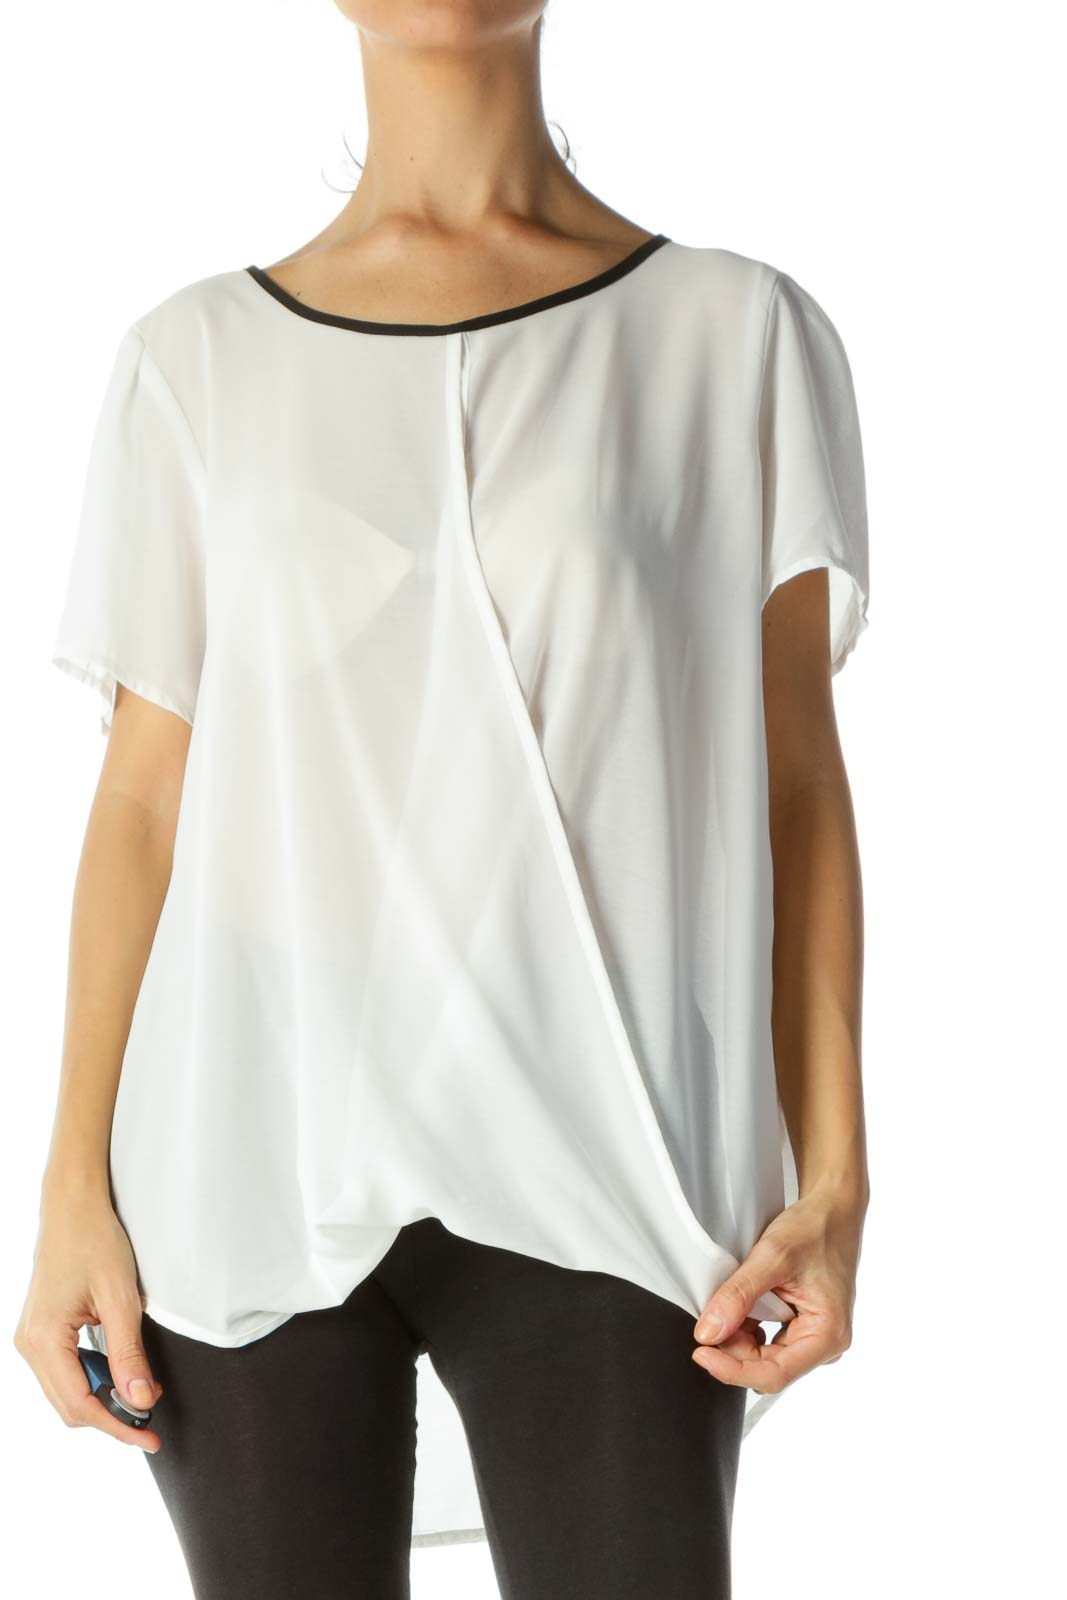 White&Black Sheer Wrap Top Front